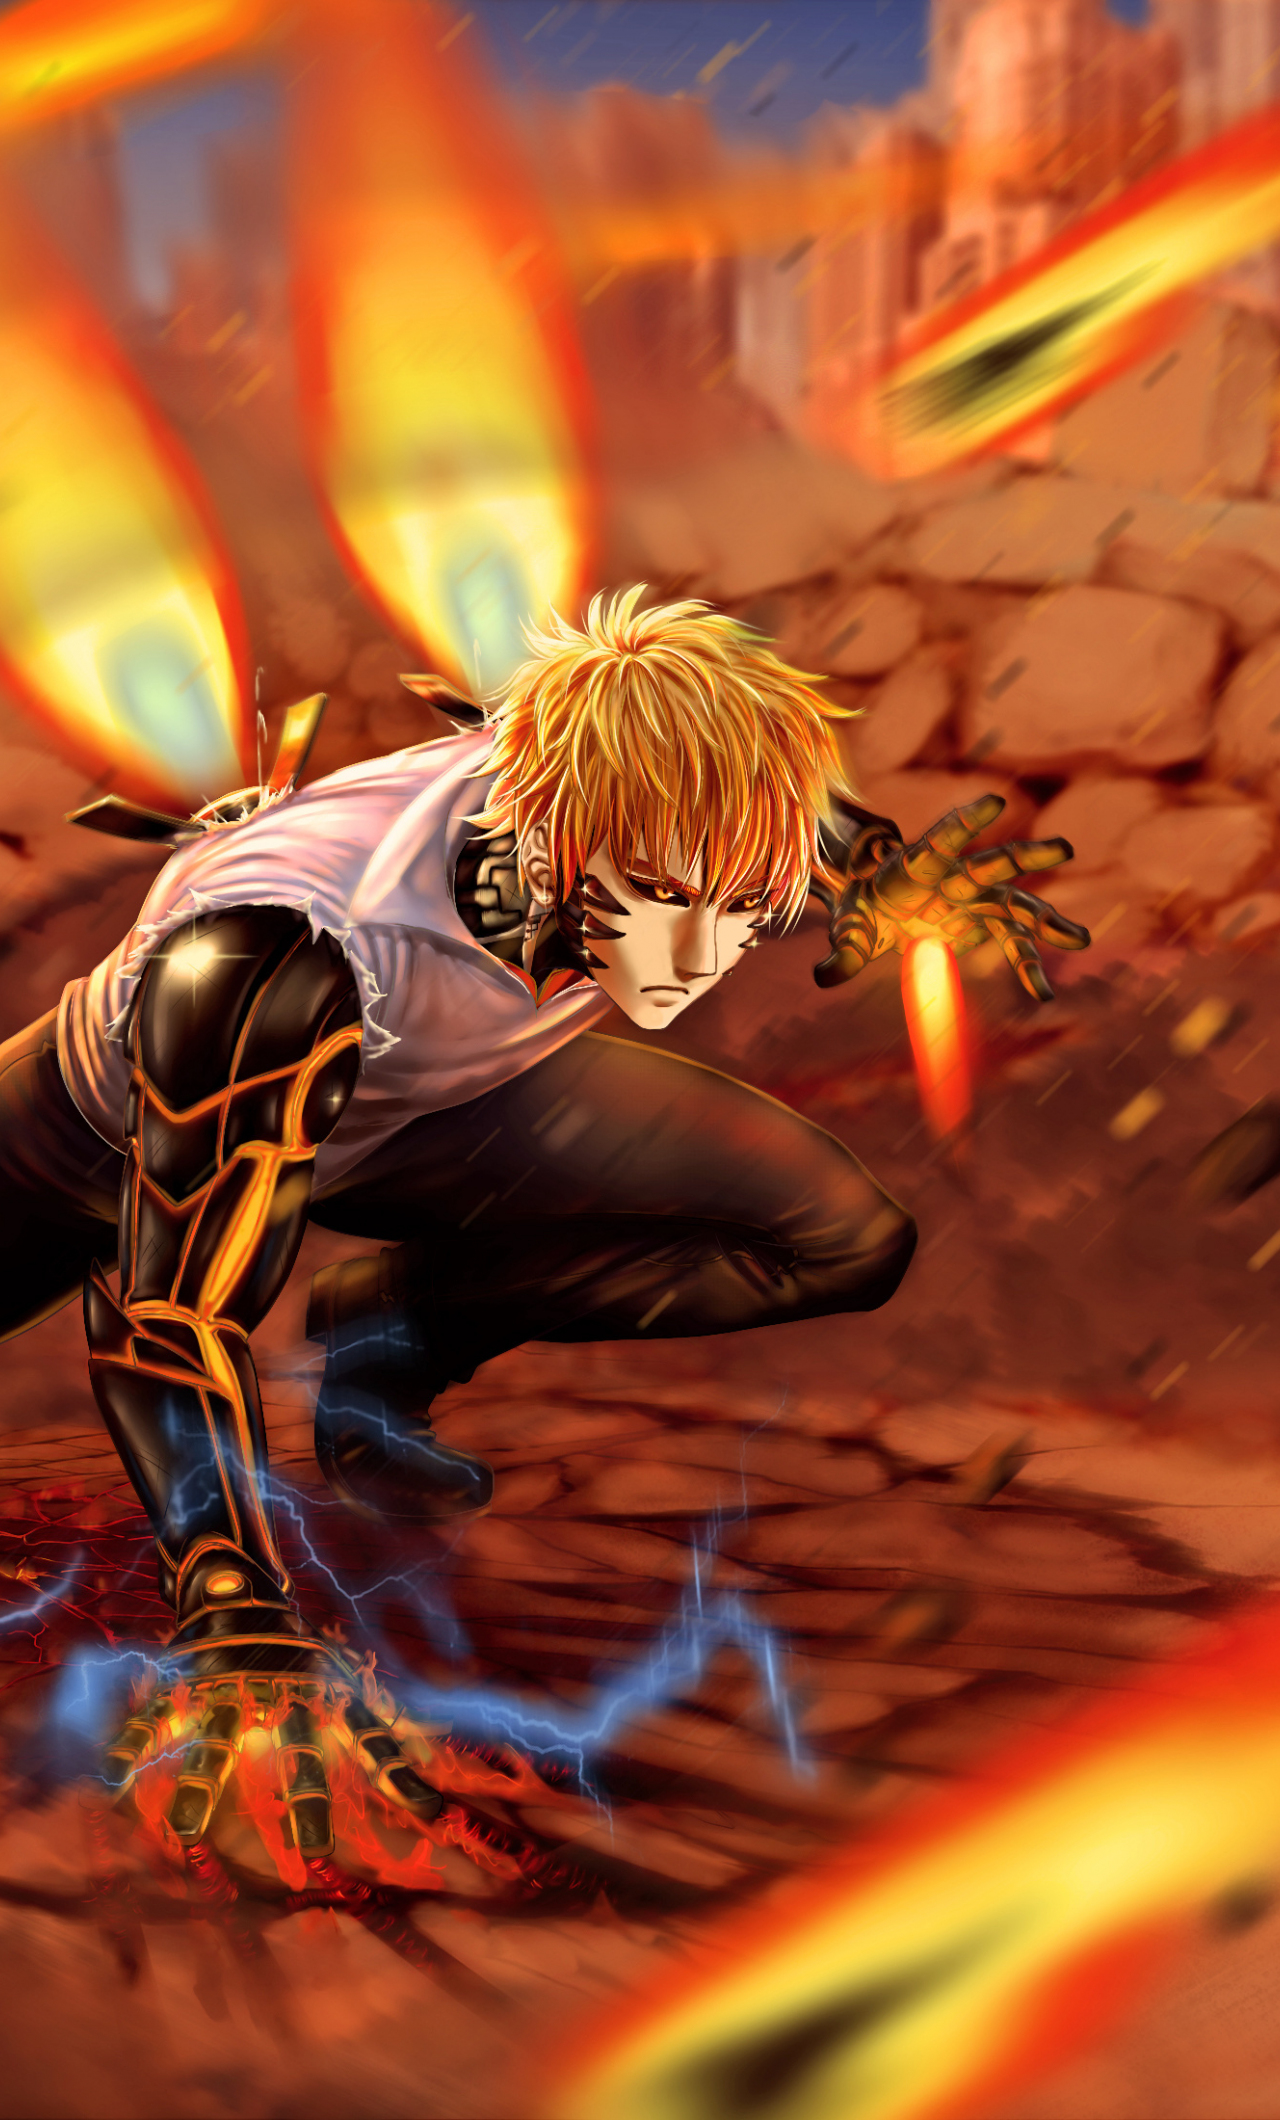 Collected 250 one punch man wallpapers and background picture for desktop & mobile device. Angelanne: Home Screen One Punch Man Wallpaper Phone